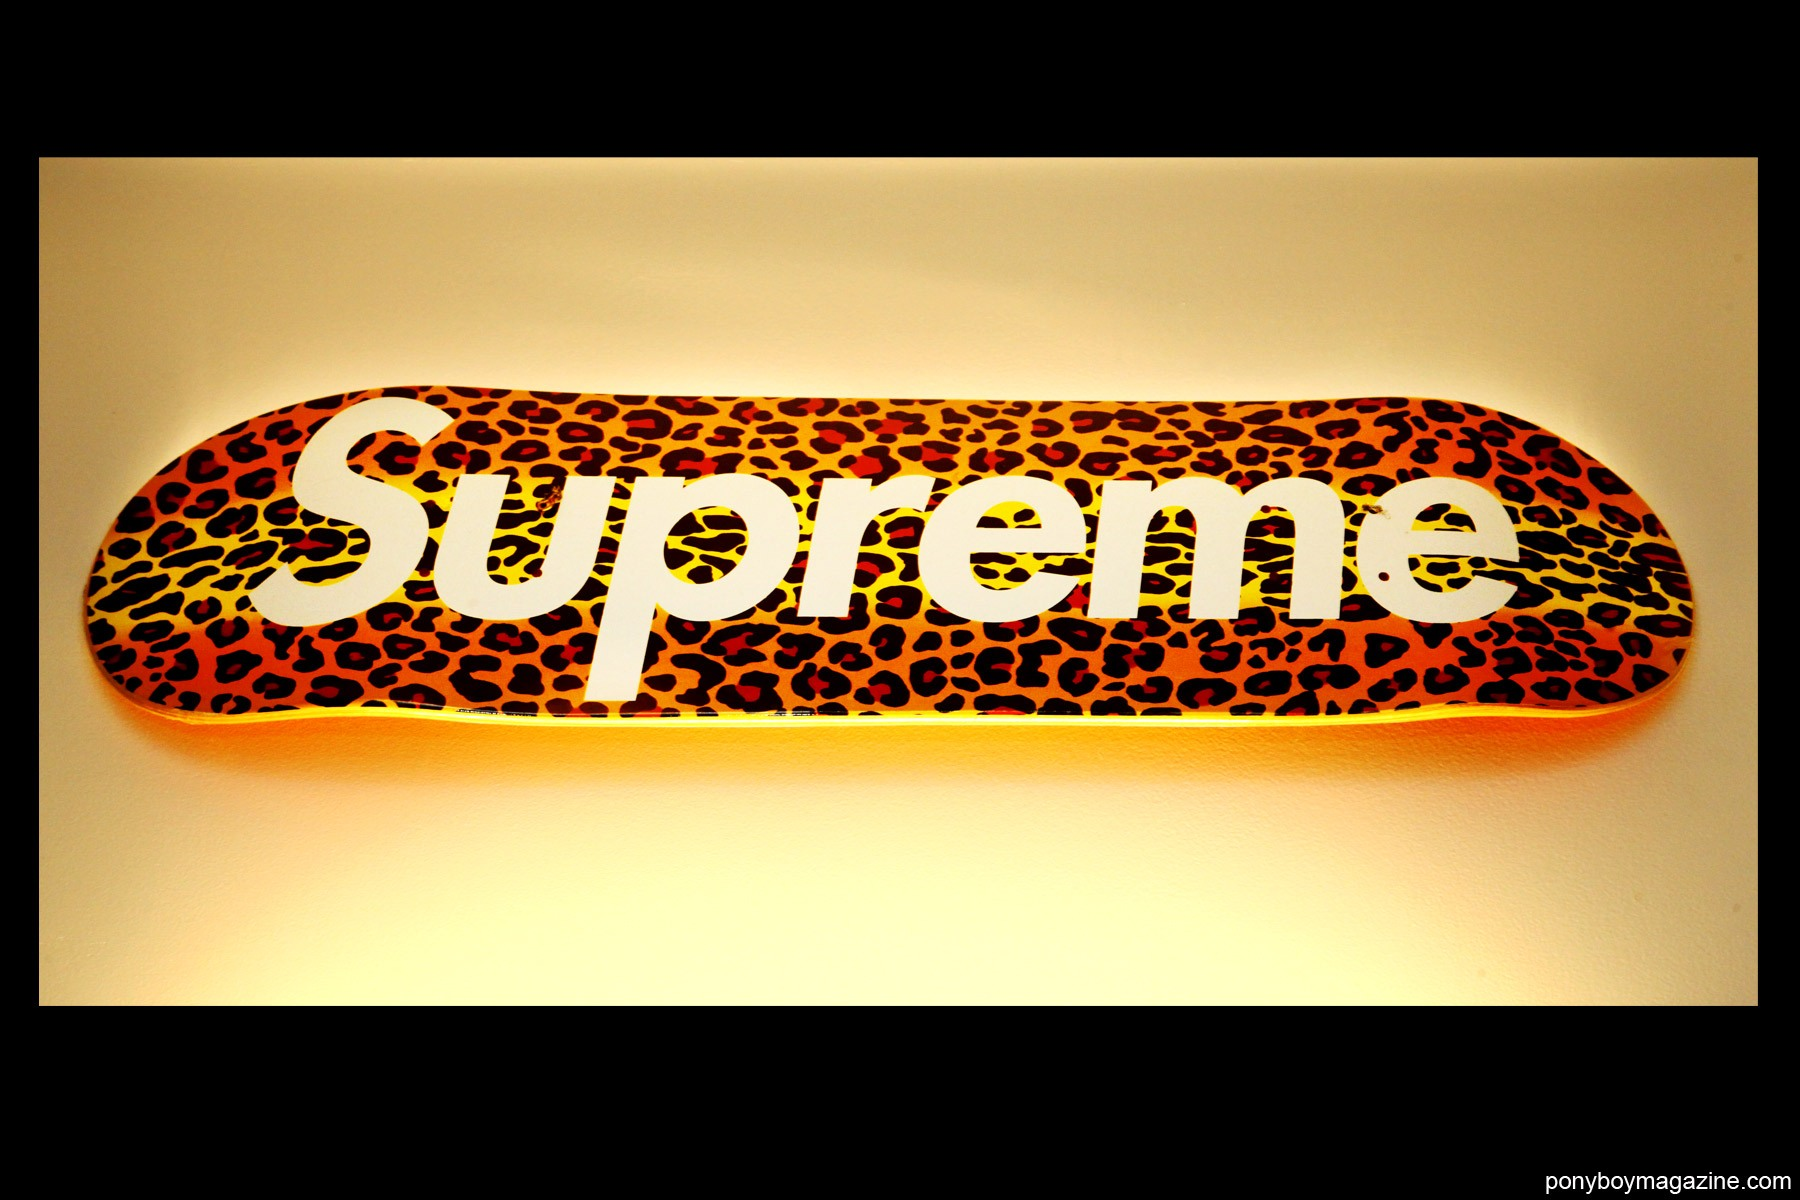 A Supreme skateboard owned by New Yorker Peter Davis. Photographed by Alexander Thompson for Ponyboy Magazine.